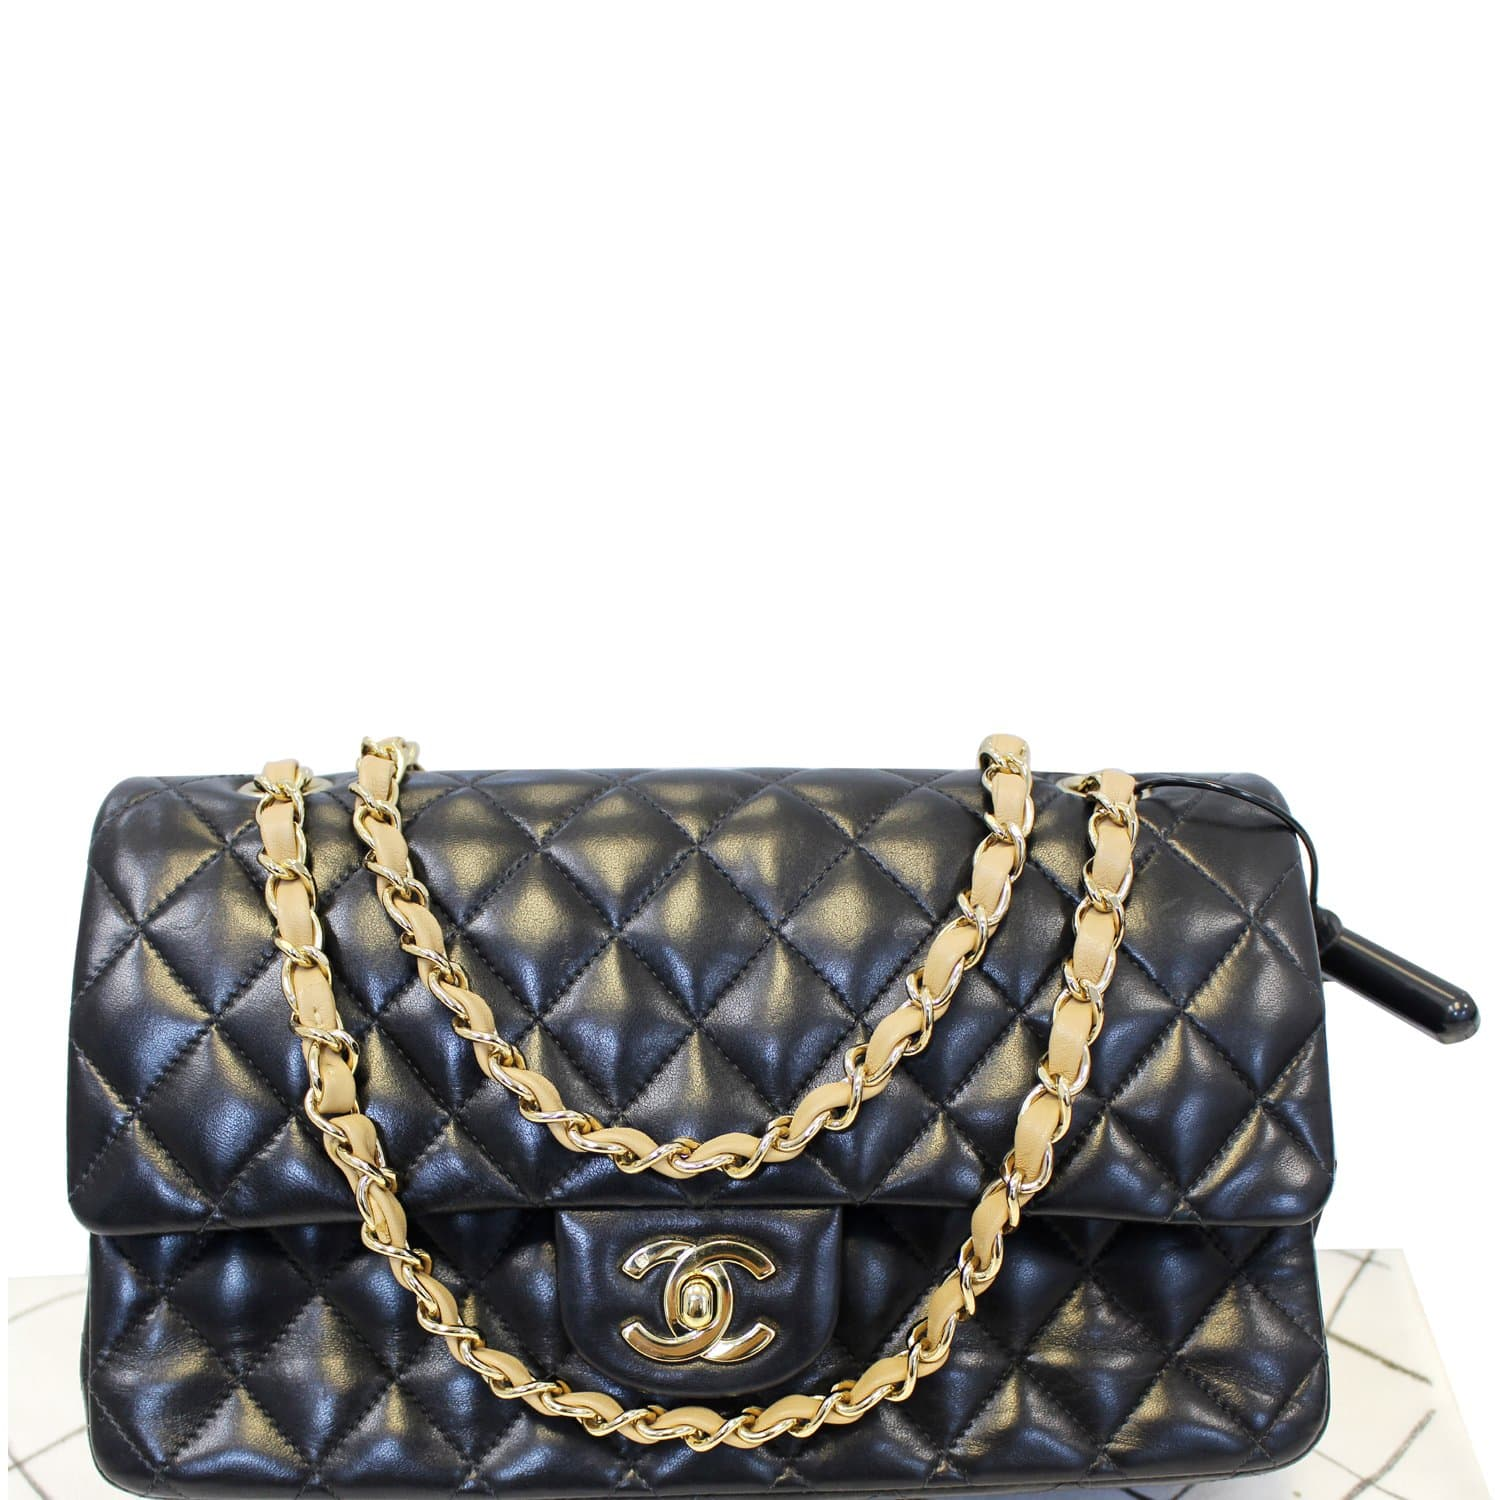 28a02afe7998 CHANEL Classic Jumbo Quilted Lambskin Leather Double Flap Shoulder Bag-US